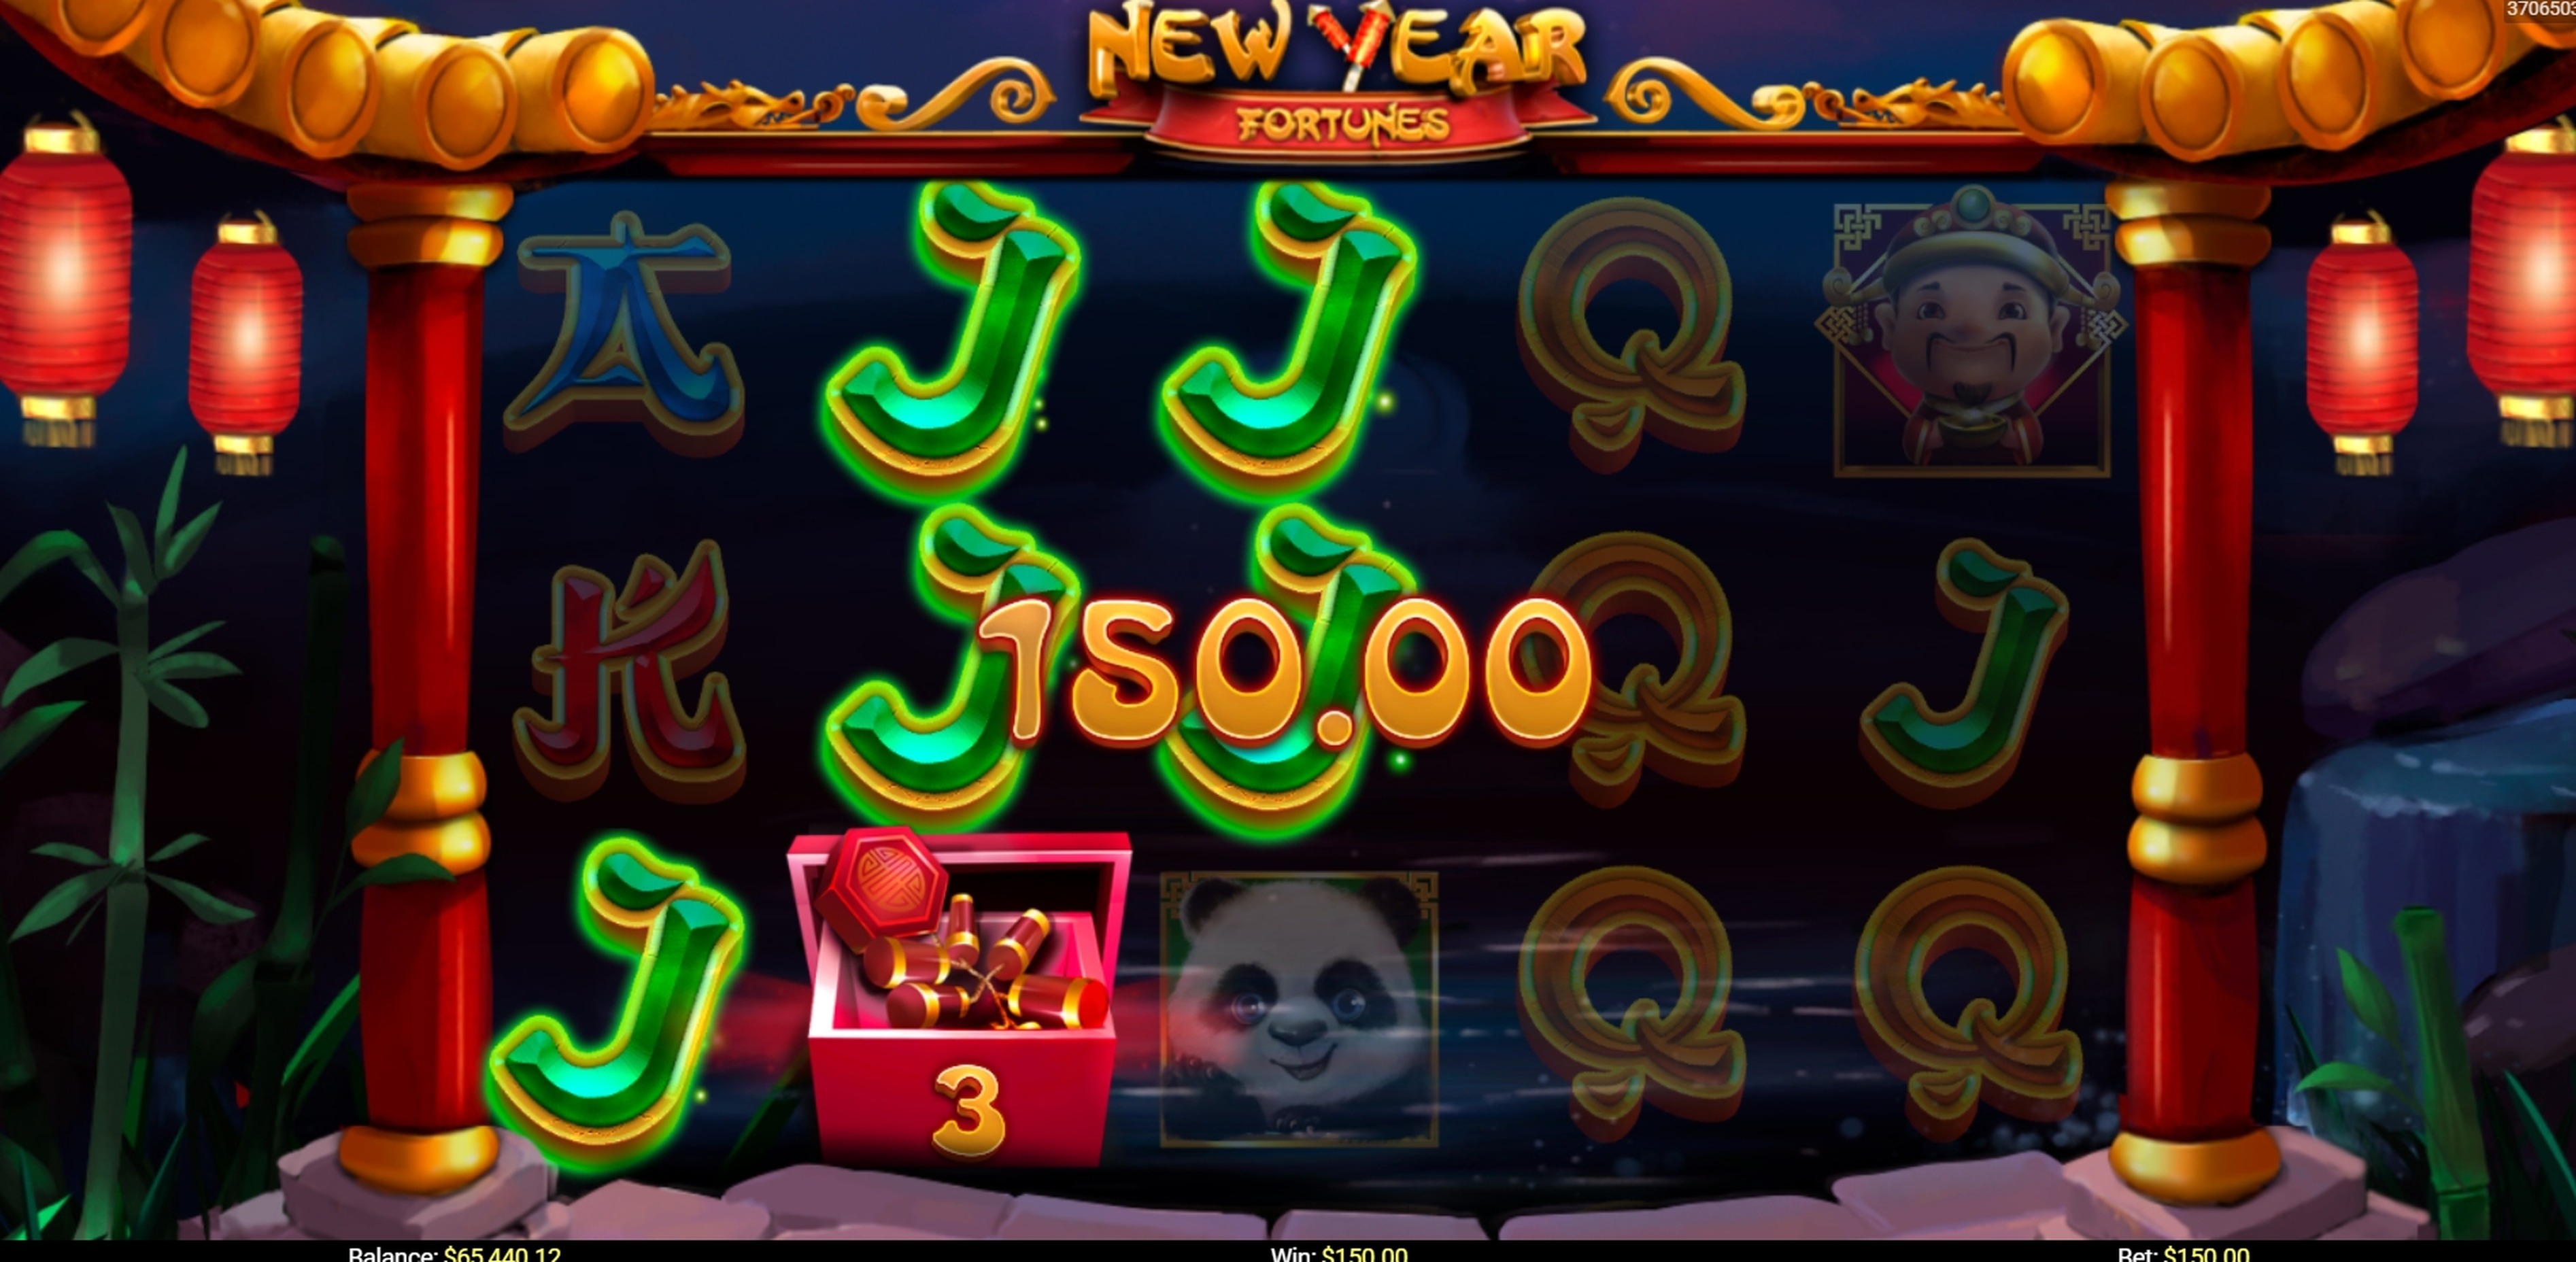 Win Money in New Year Fortunes Free Slot Game by Mobilots